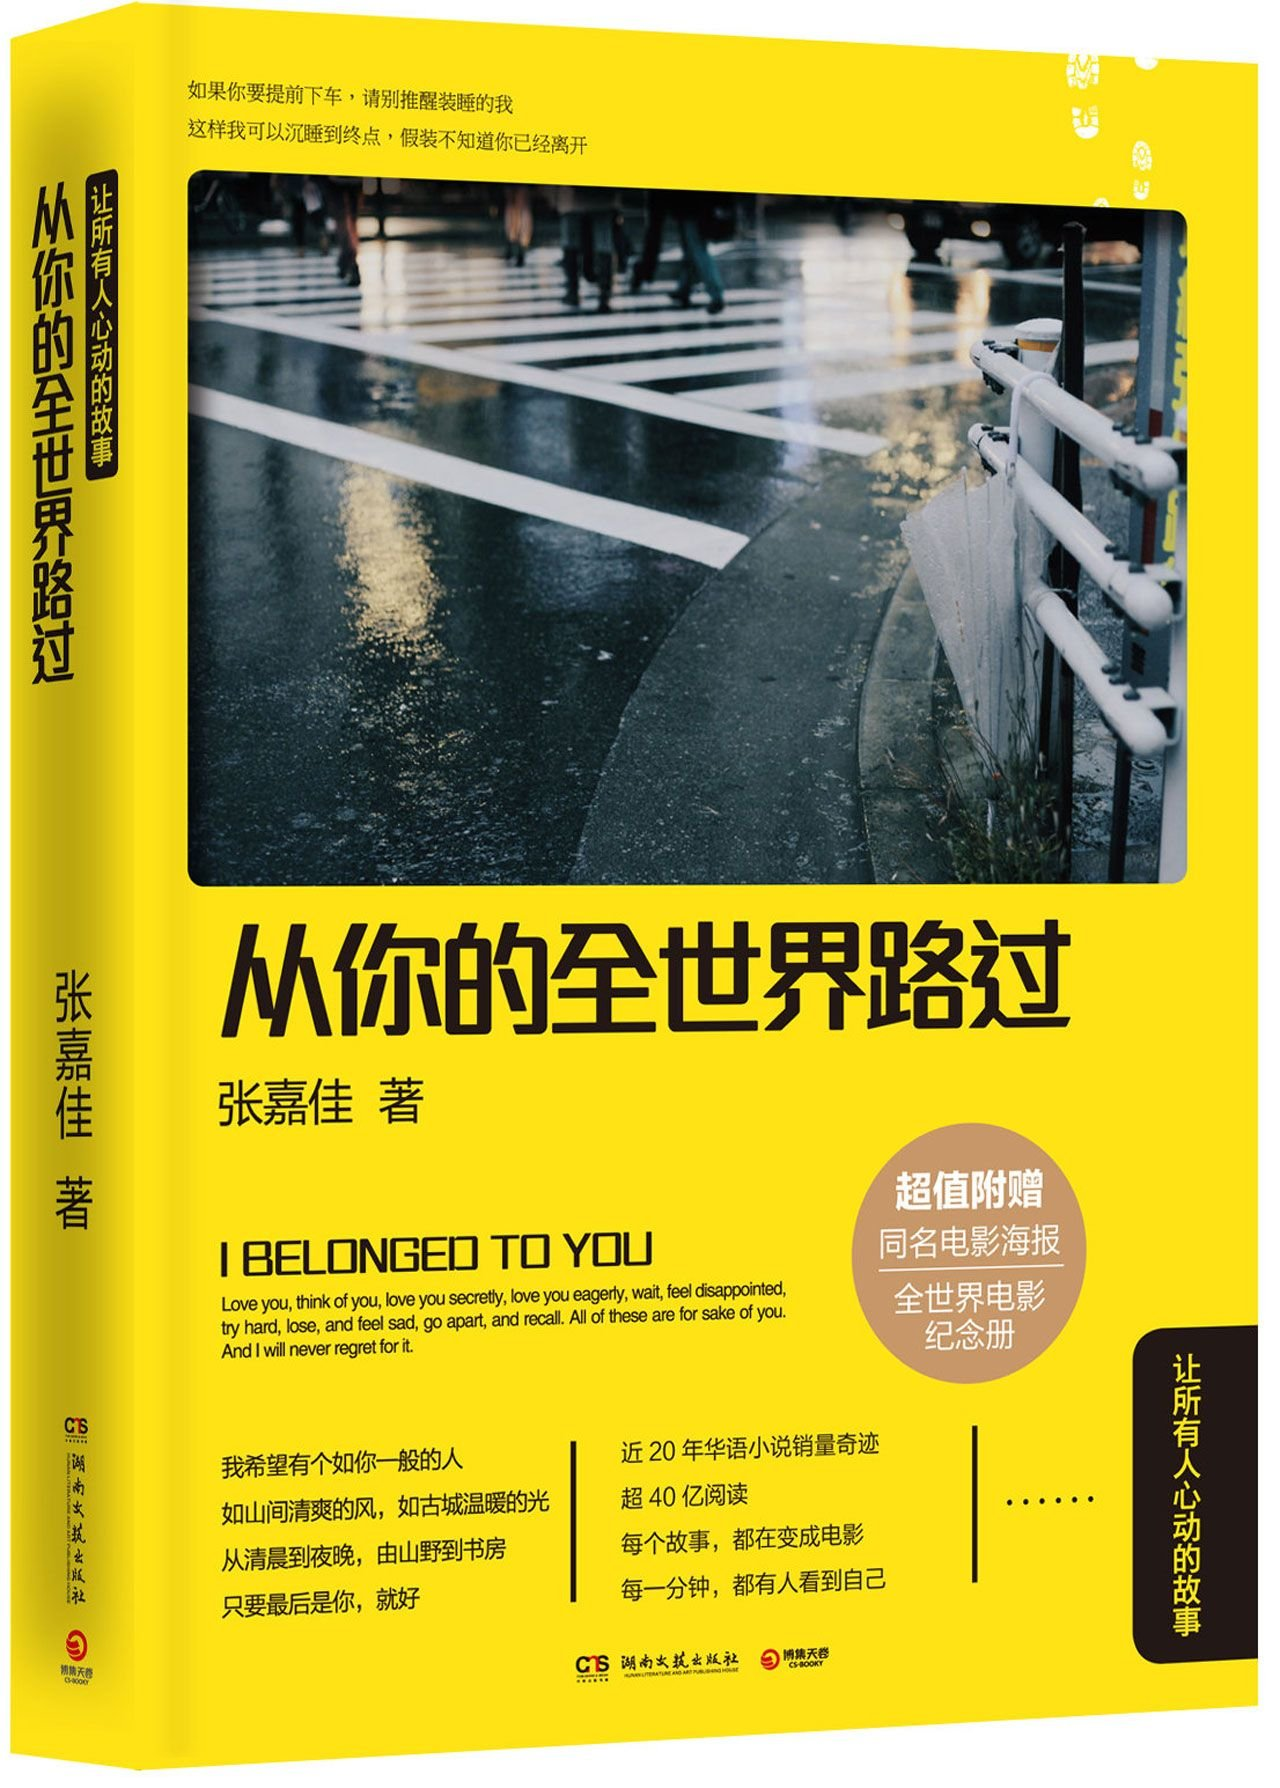 I Belonged To You (Chinese Edition)Deng Chao Bai Baihe Starring In The Movie Of The Same Name By Zhang Jiajia (Author)